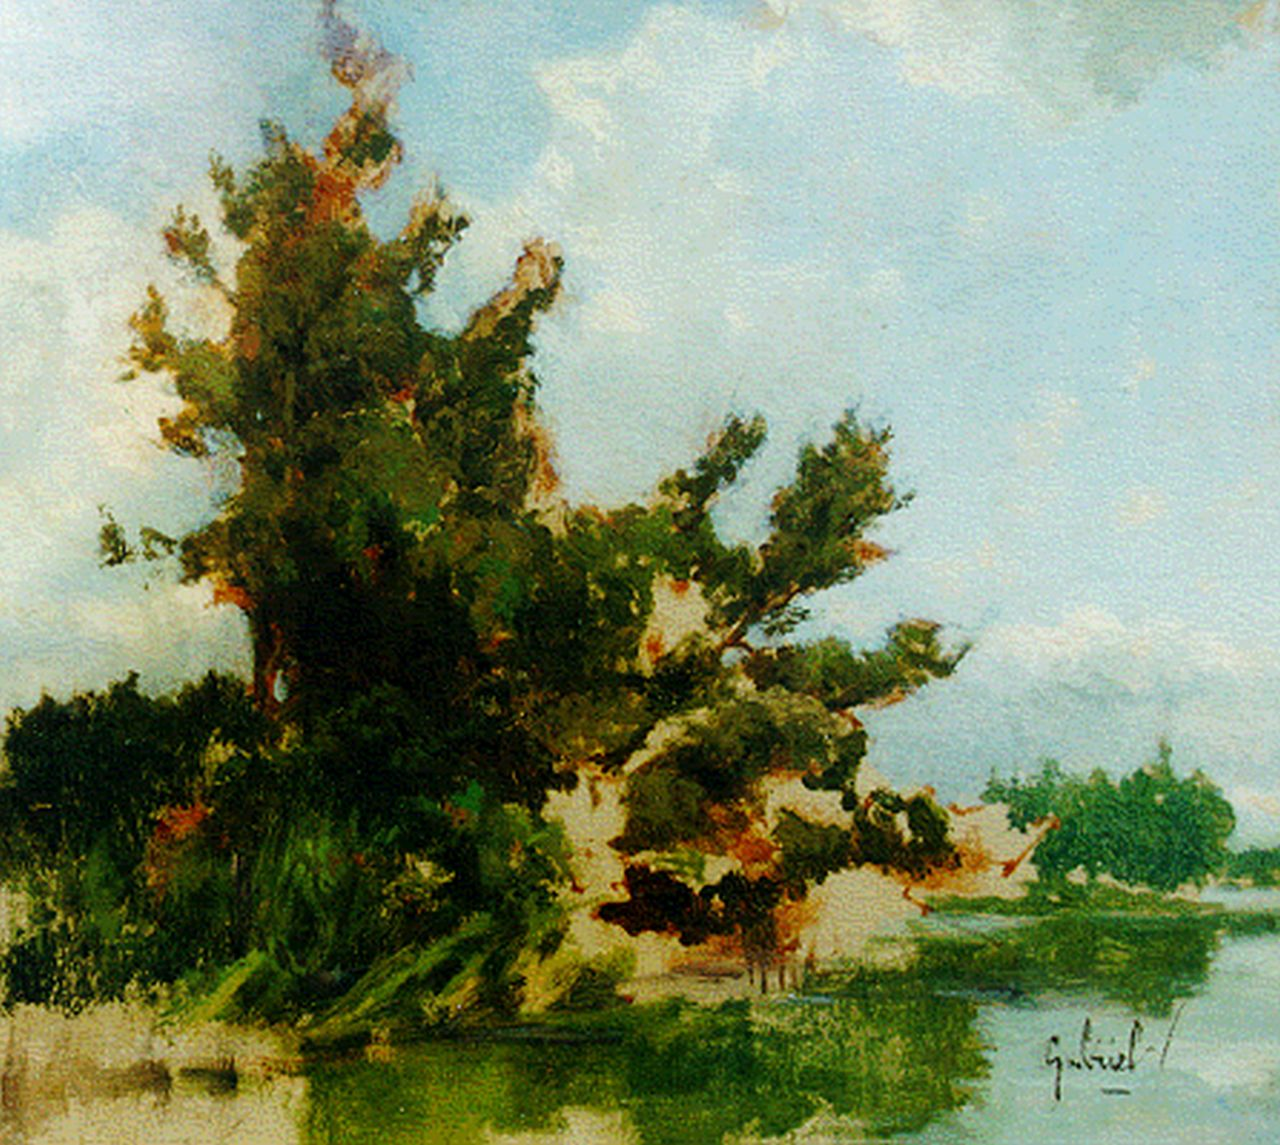 Gabriel P.J.C.  | Paul Joseph Constantin 'Constan(t)' Gabriel, Landscape with pond (sketch), oil on panel 28.4 x 31.7 cm, signed l.r.